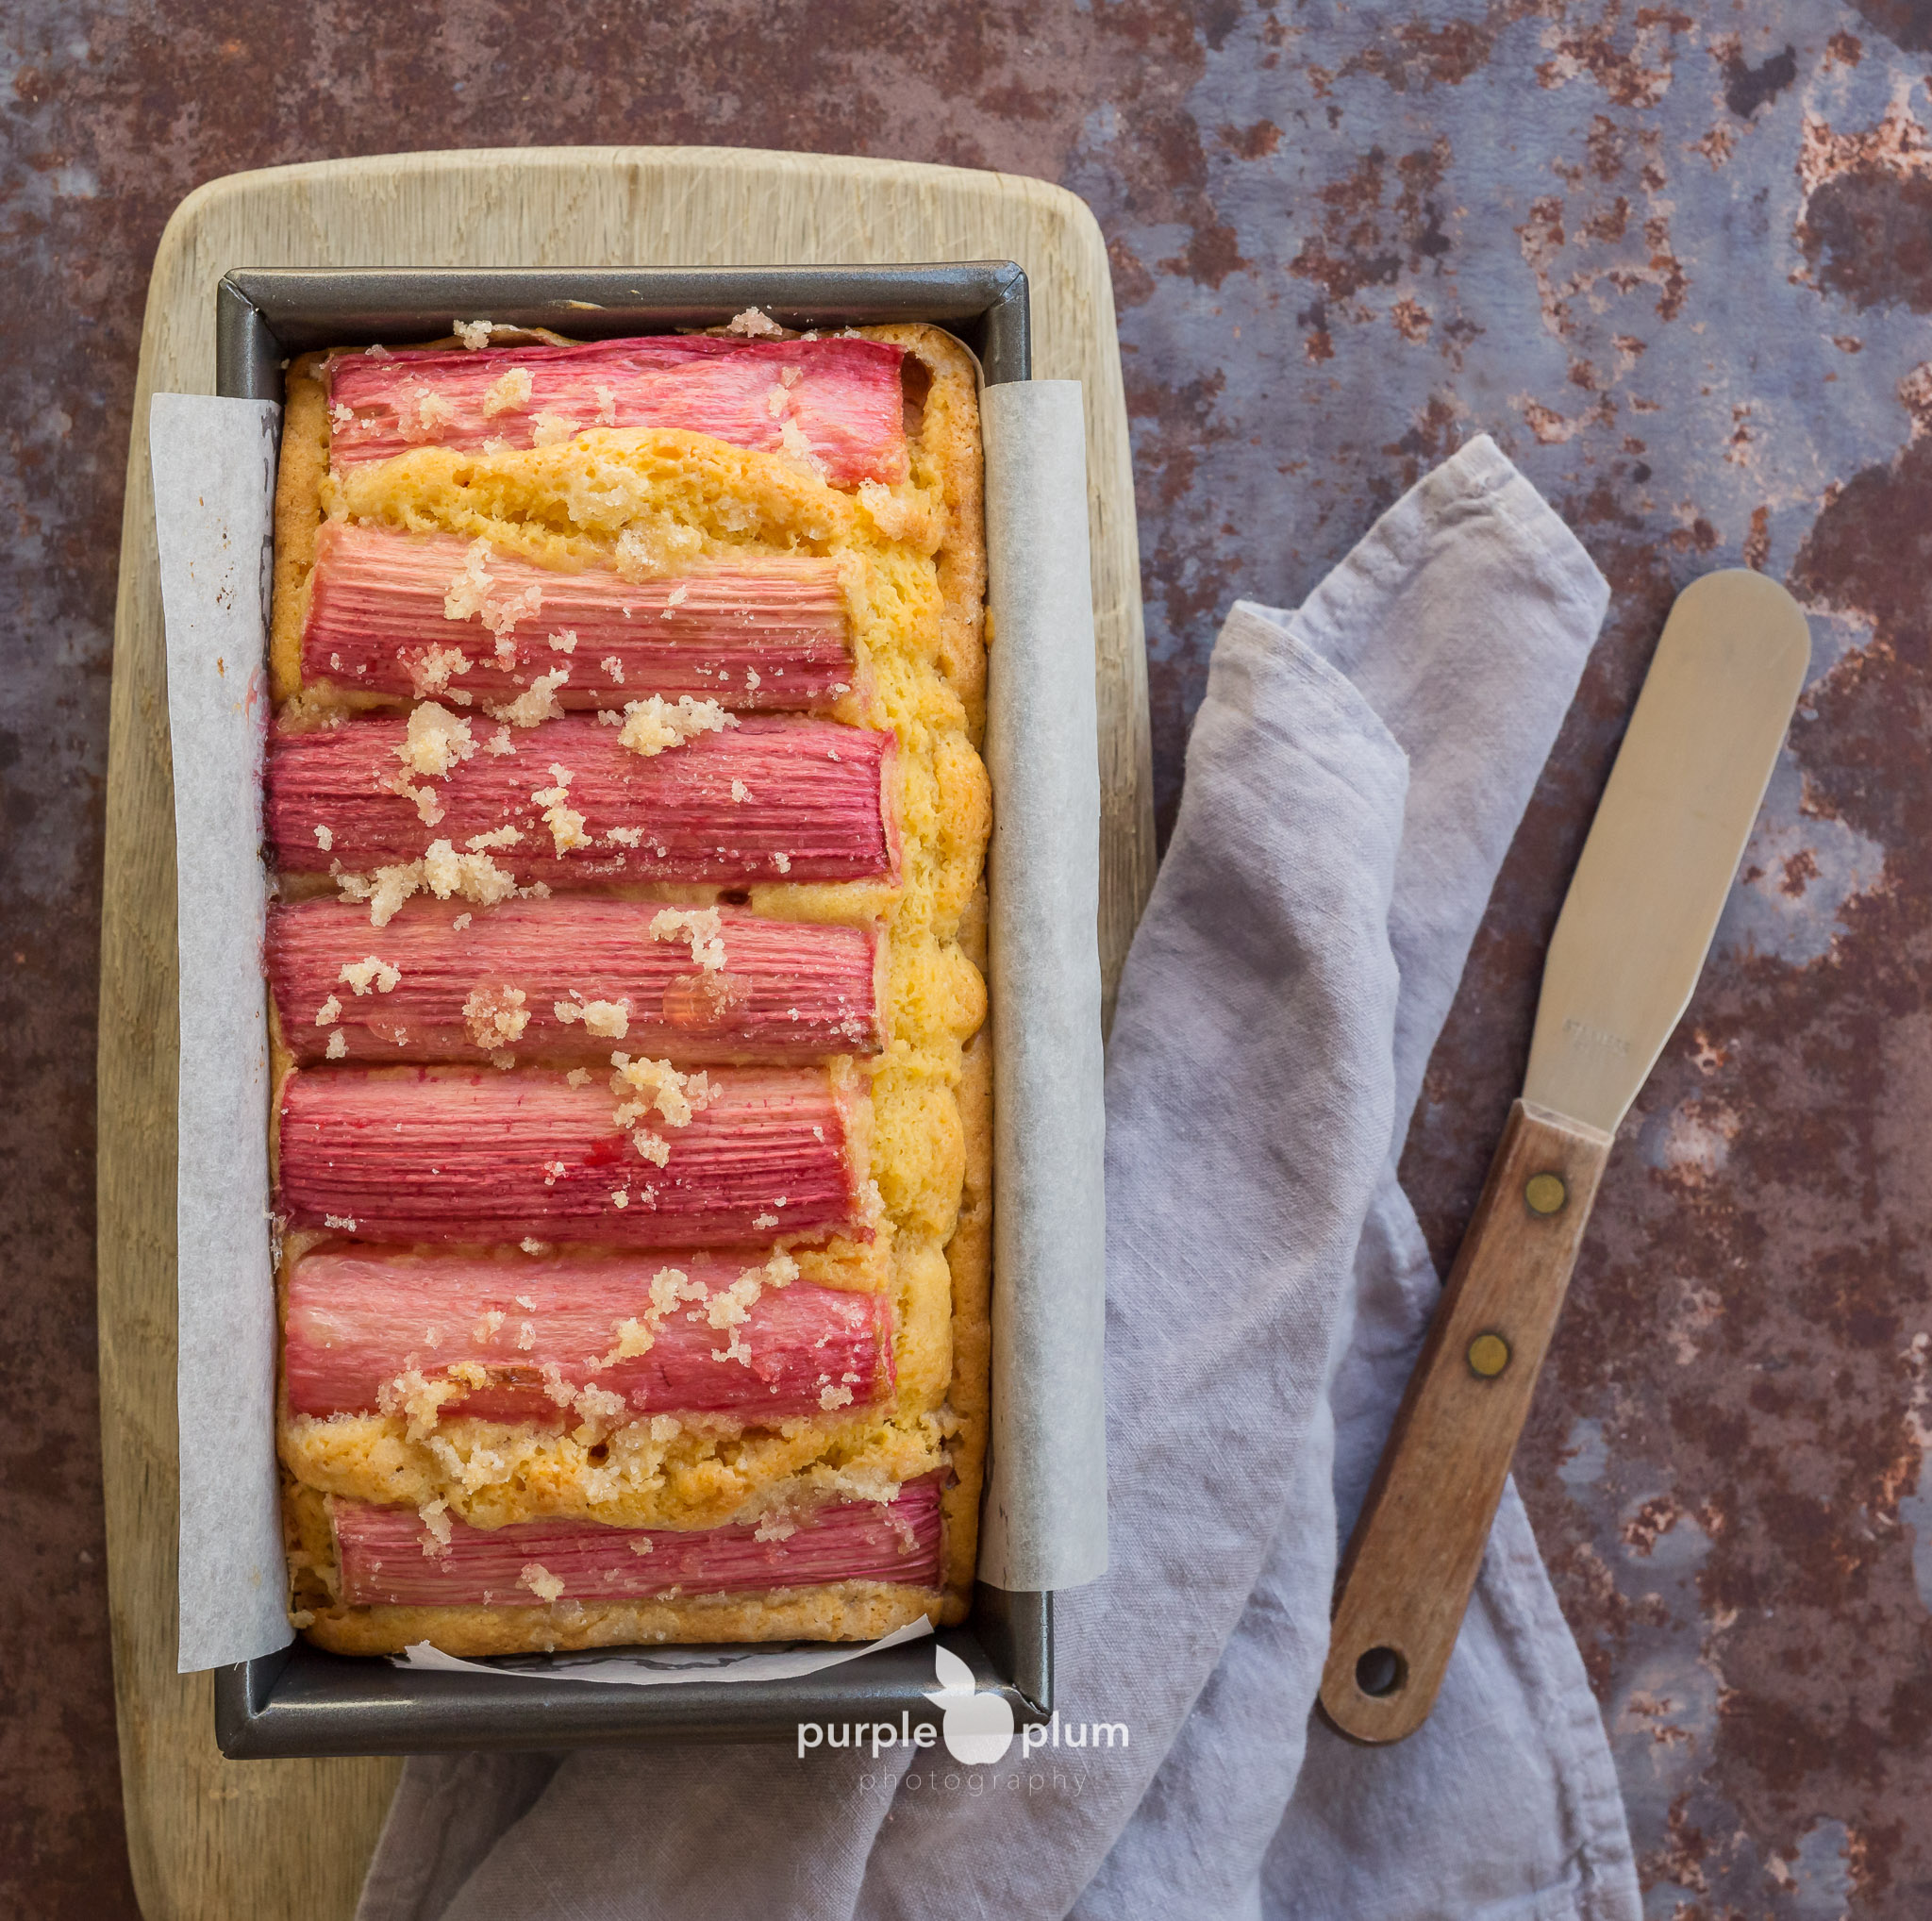 Rhubarb and Cardamom Custard Cake - fresh out of the oven